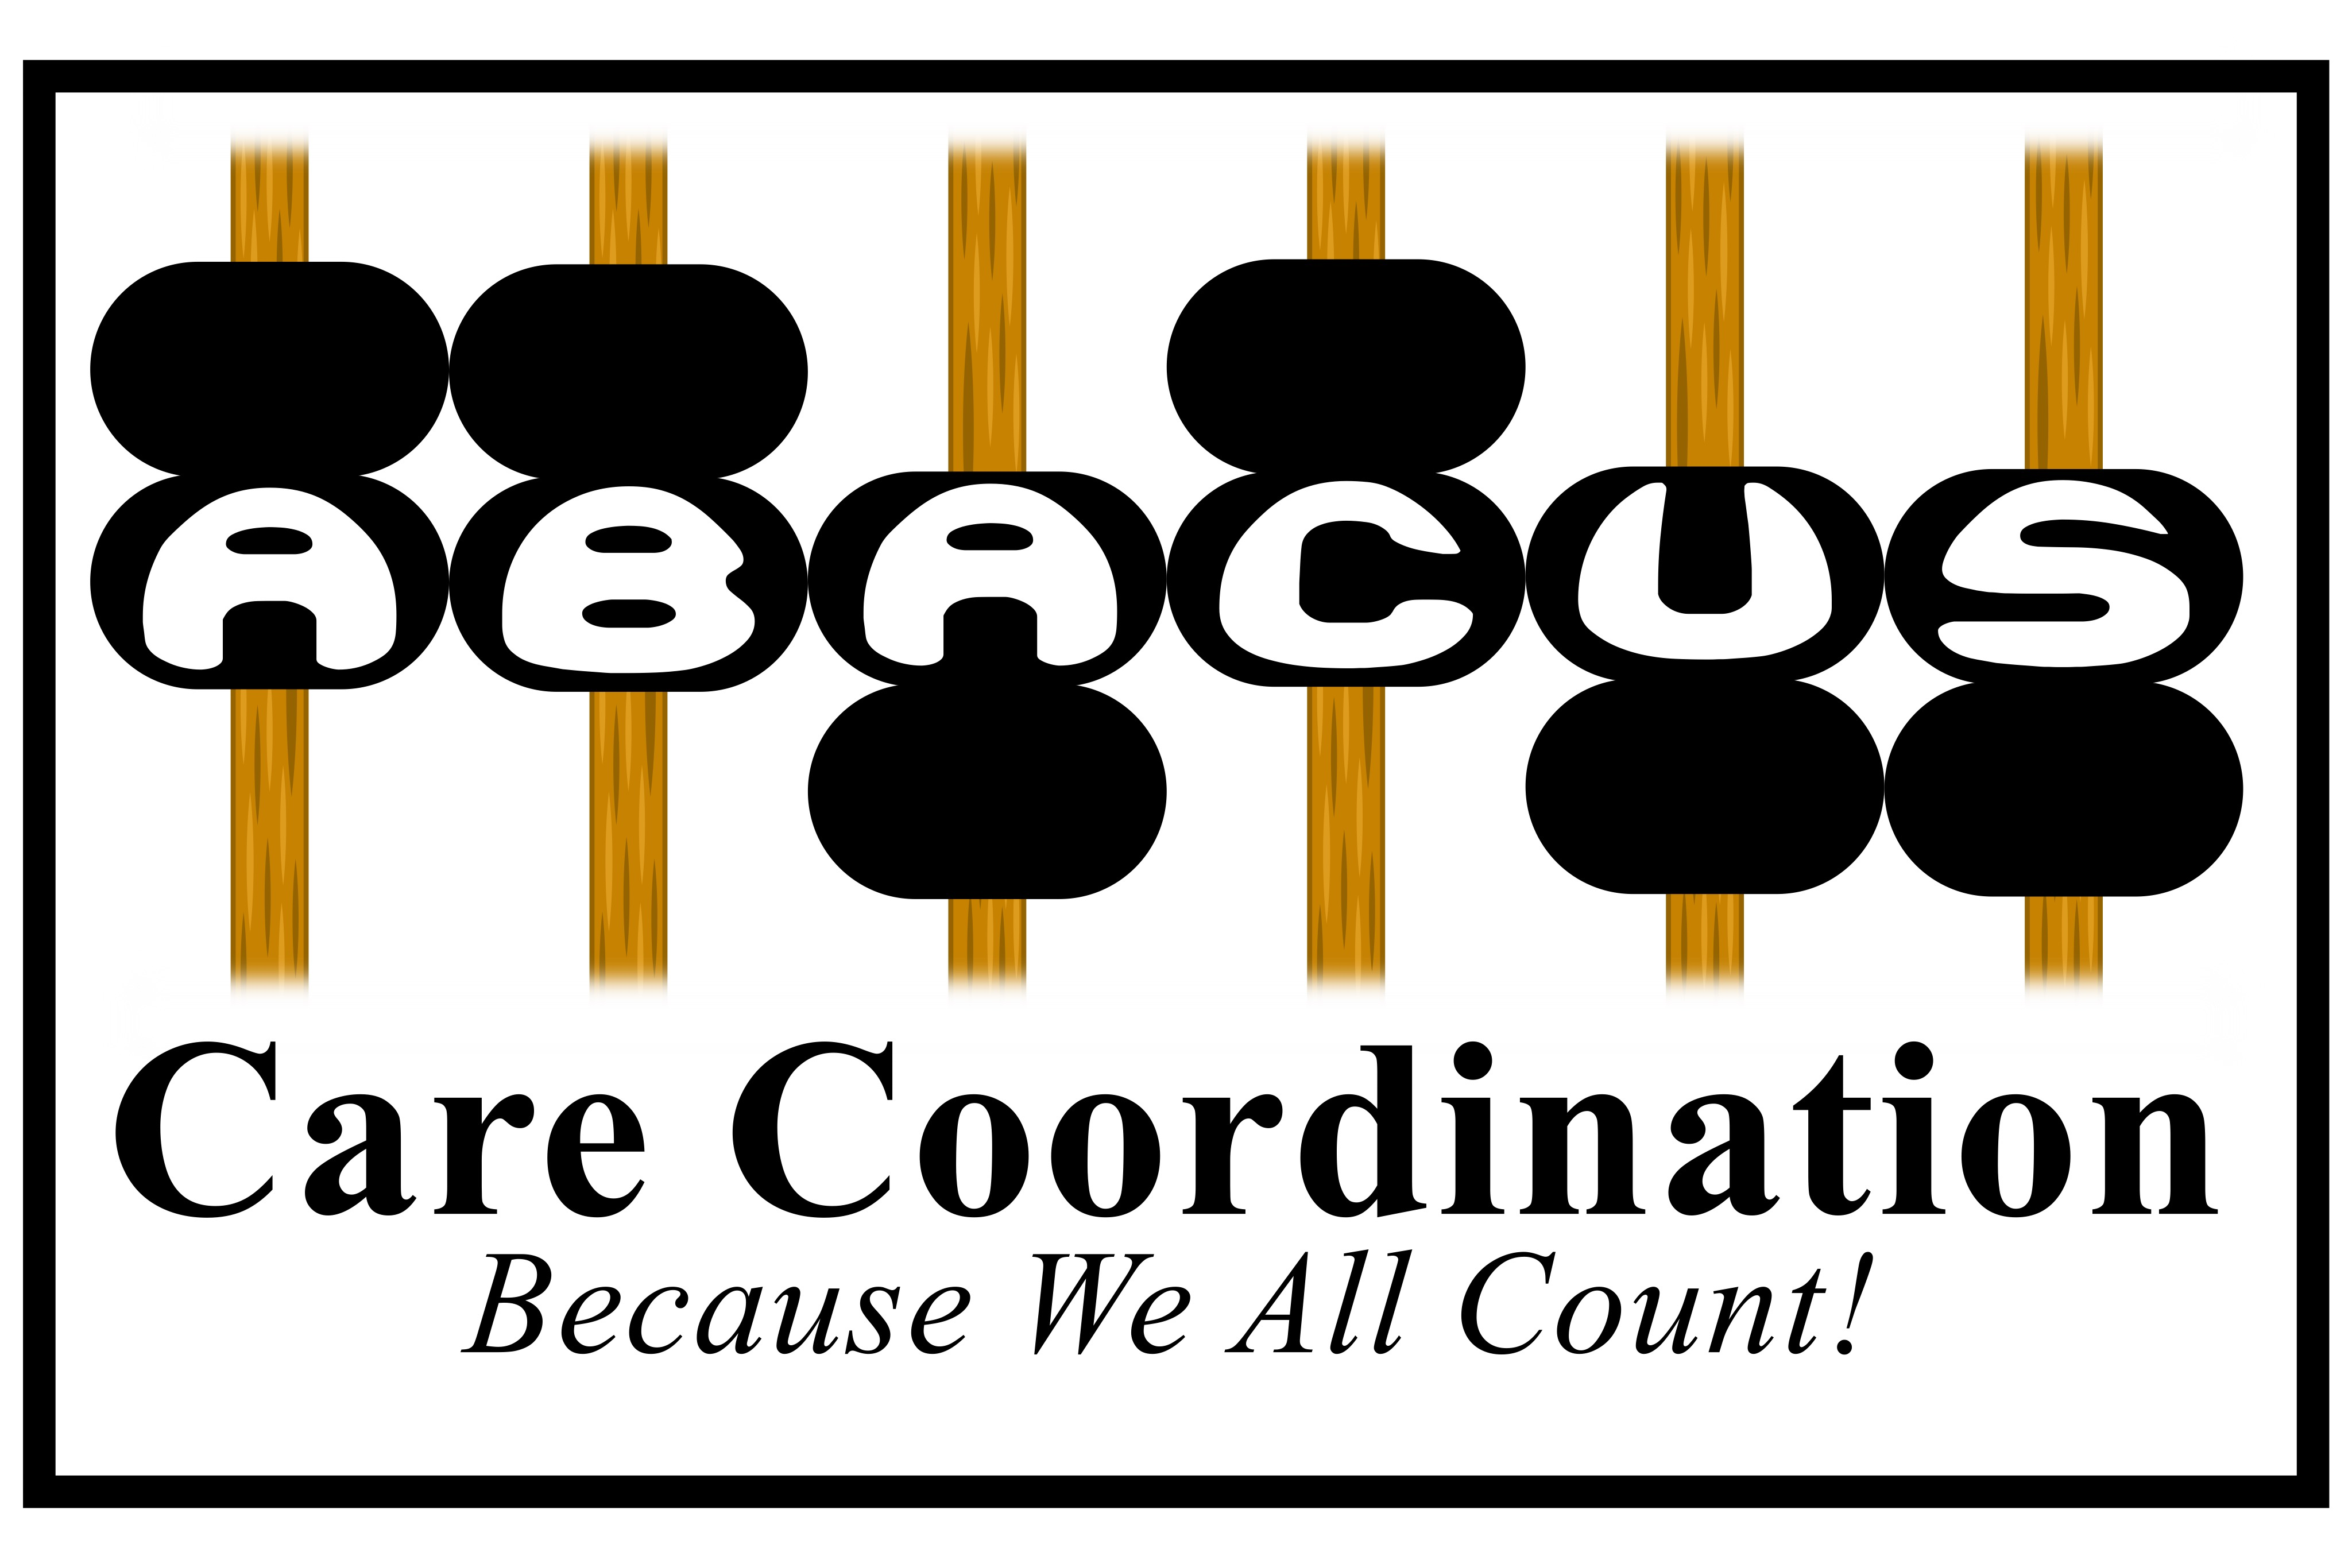 Abacus Care Coordination